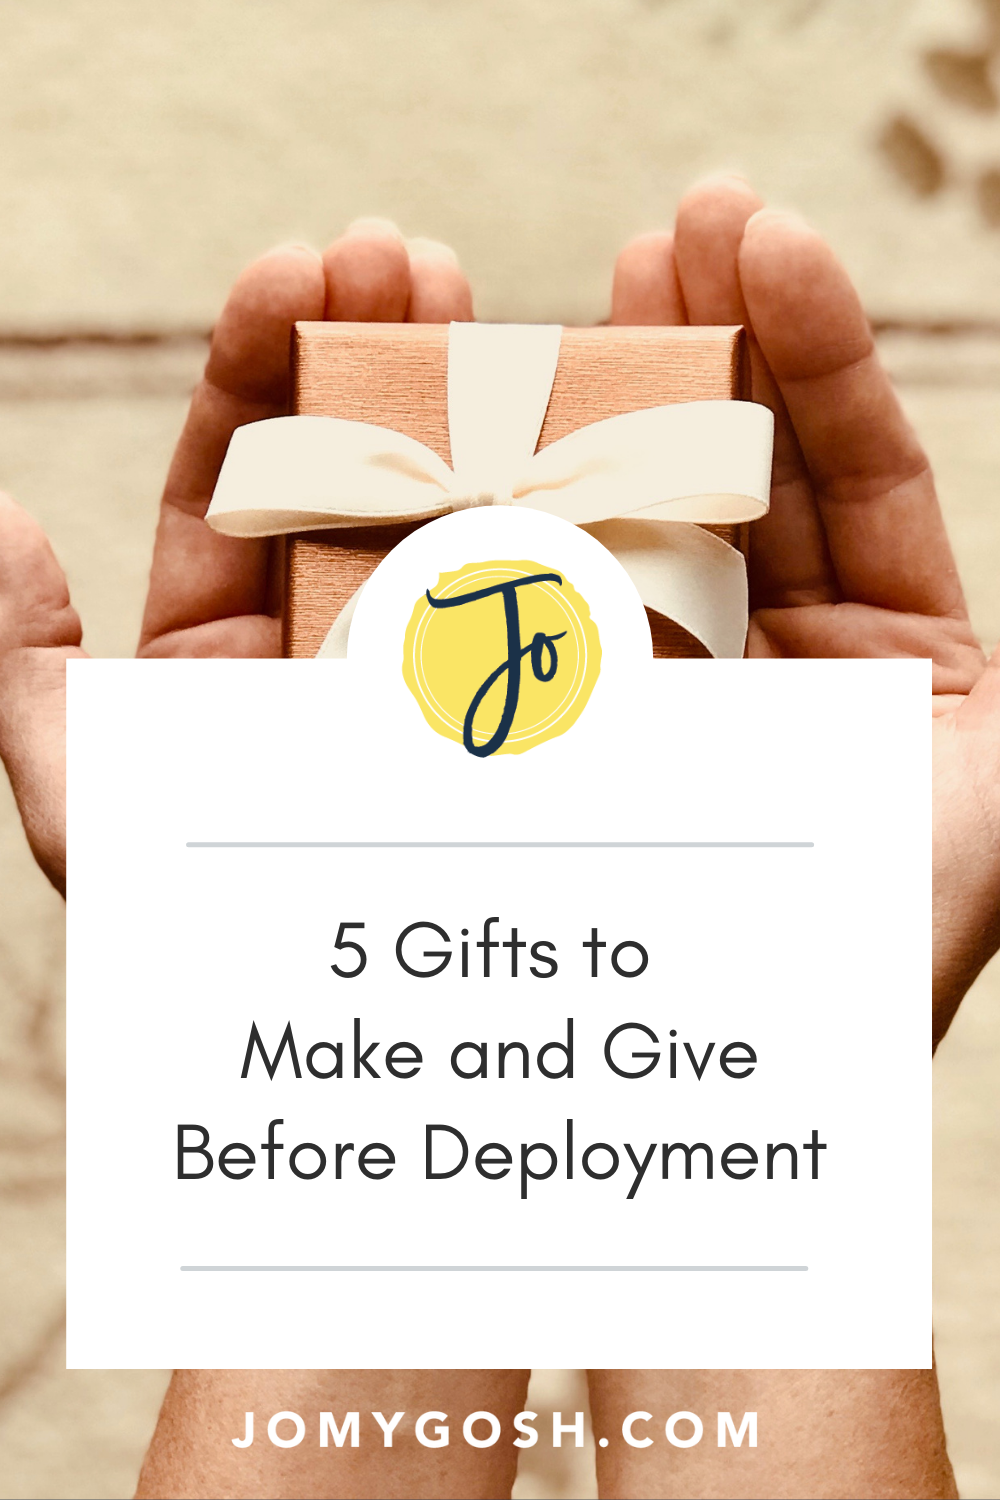 """Getting ready to say """"see you soon"""" to a loved one going on deployment? Use these thoughtful gift ideas to send them off with something meaningful. #deployment #gifts #militaryspouse #milspouse #militaryspouses #milspouses #milso #deployment #deploymentlife #deploymentsucks #military #army #navy #airforce #marines #coastguard"""